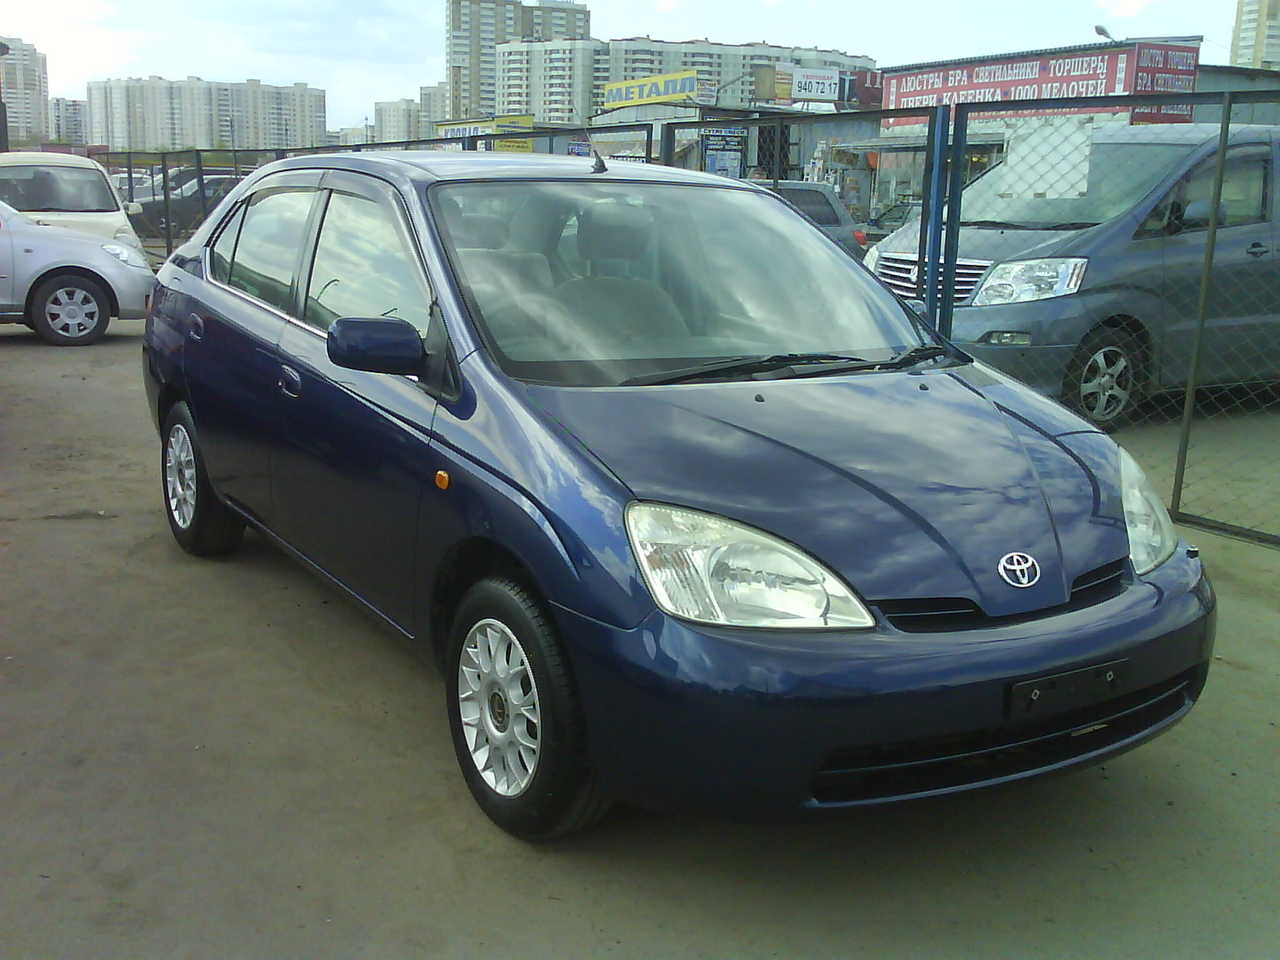 2002 Toyota Prius Specs Engine Size 1500cm3 Drive Wheels Ff Transmission Gearbox Automatic